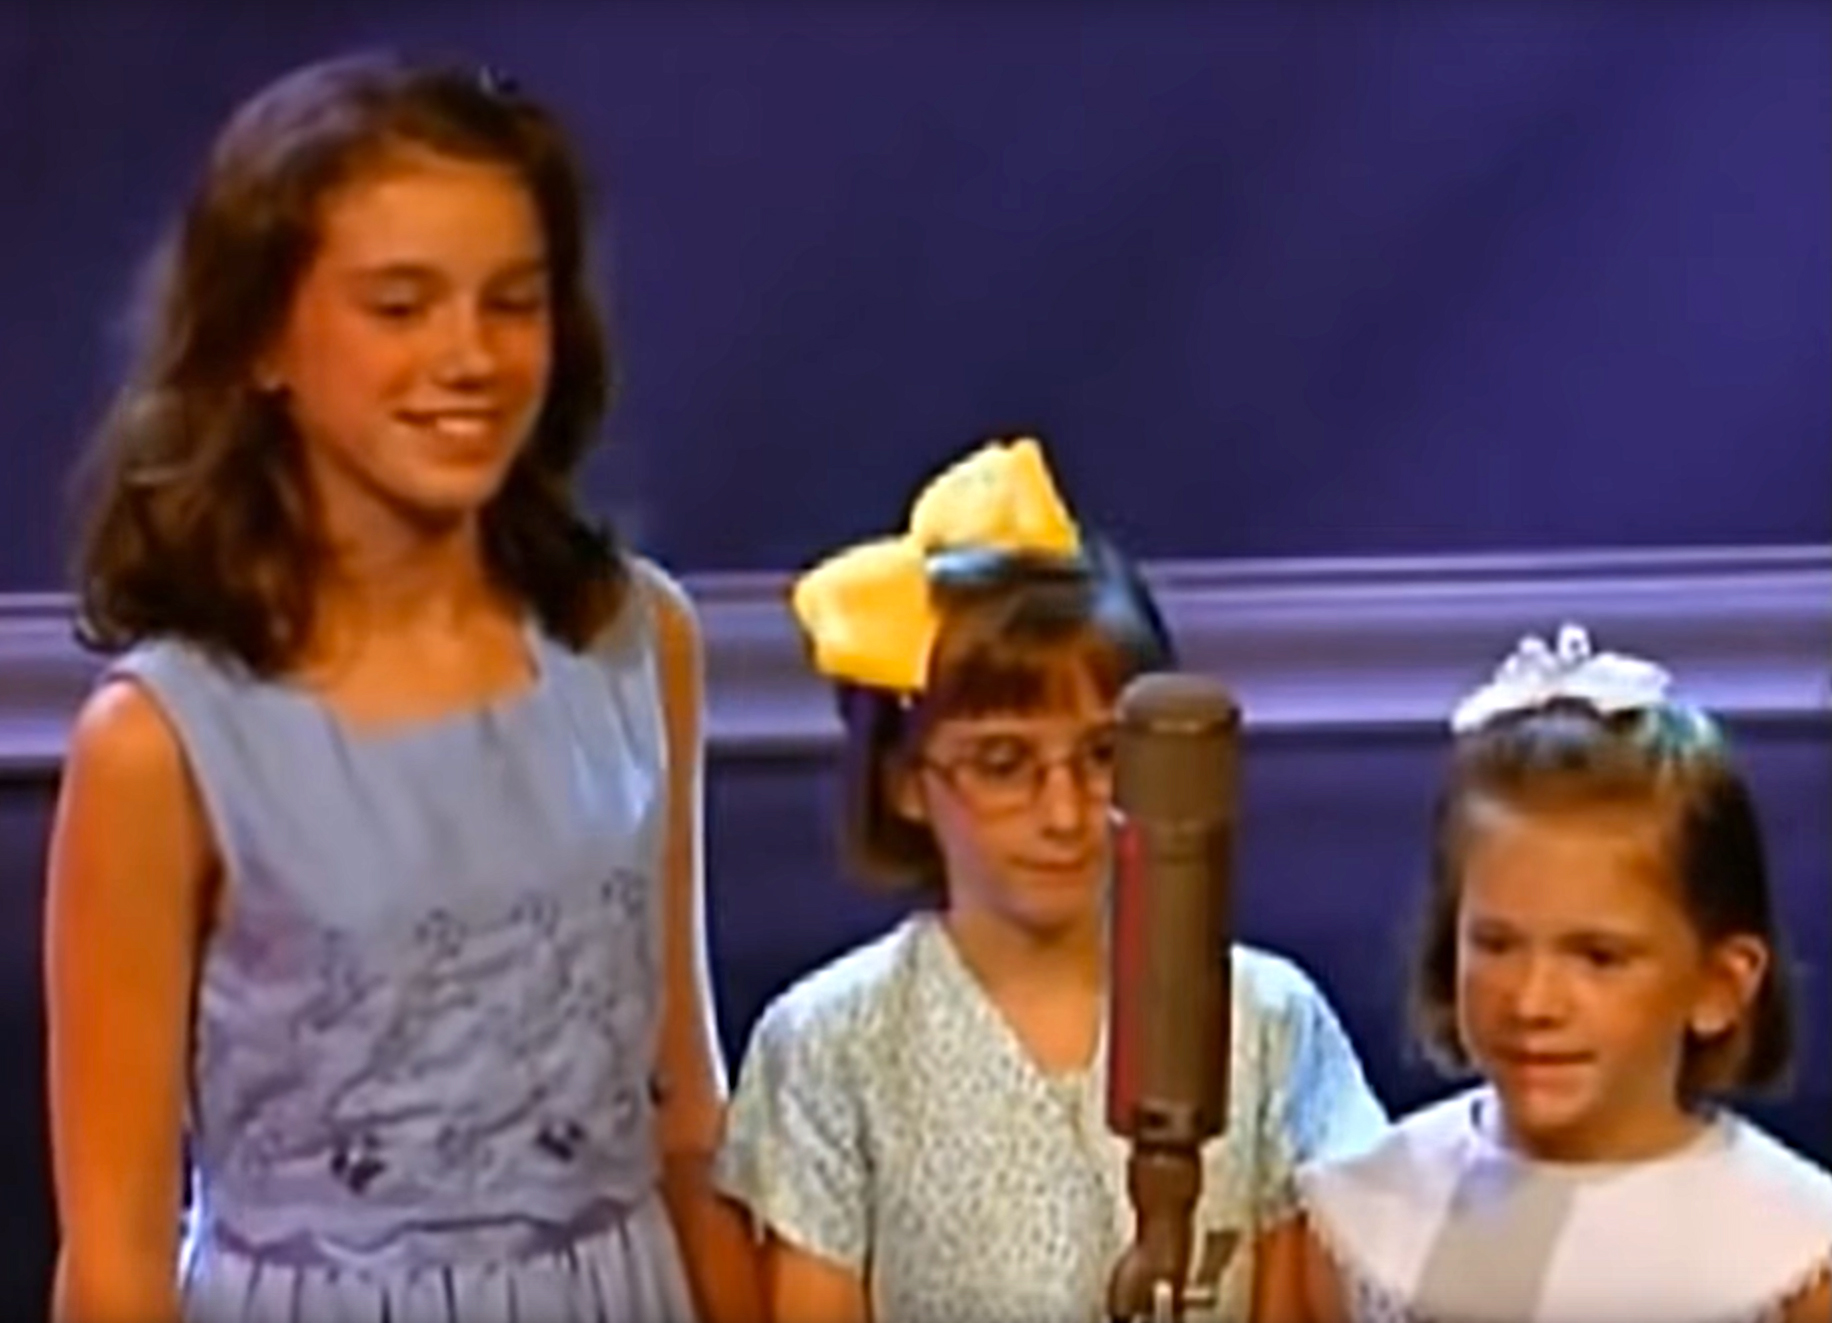 """leah-peasall-and-sister-youngest-grammy-award-winner - When the O Brother, Where Art Thou soundtrack won Album of the Year in 2002, Leah Peasall was just 8 years old as she and her sisters accepted trophies for their song """"In the Highways."""""""